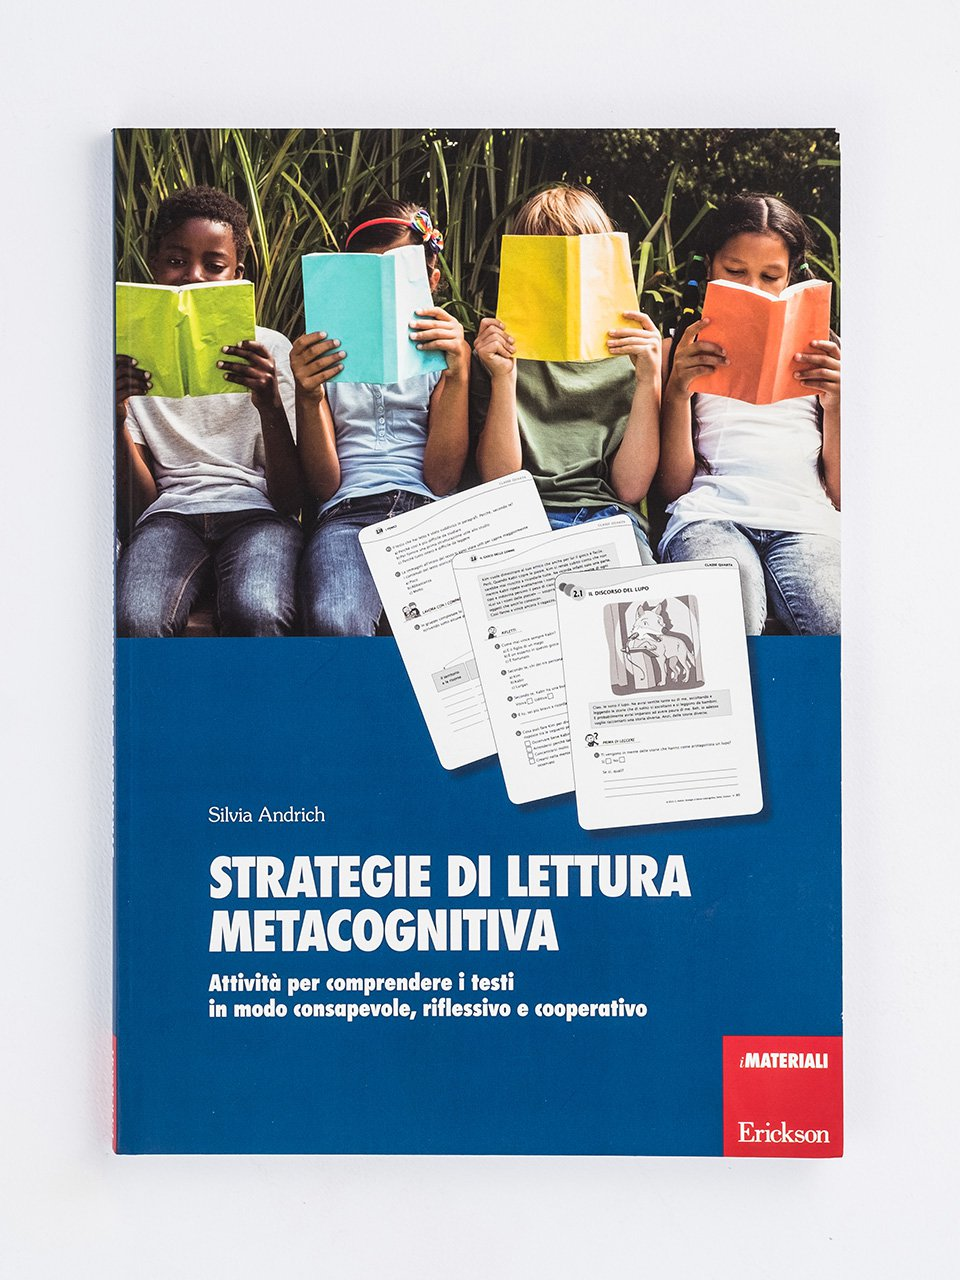 Strategie di lettura metacognitiva - Libri - Erickson 3